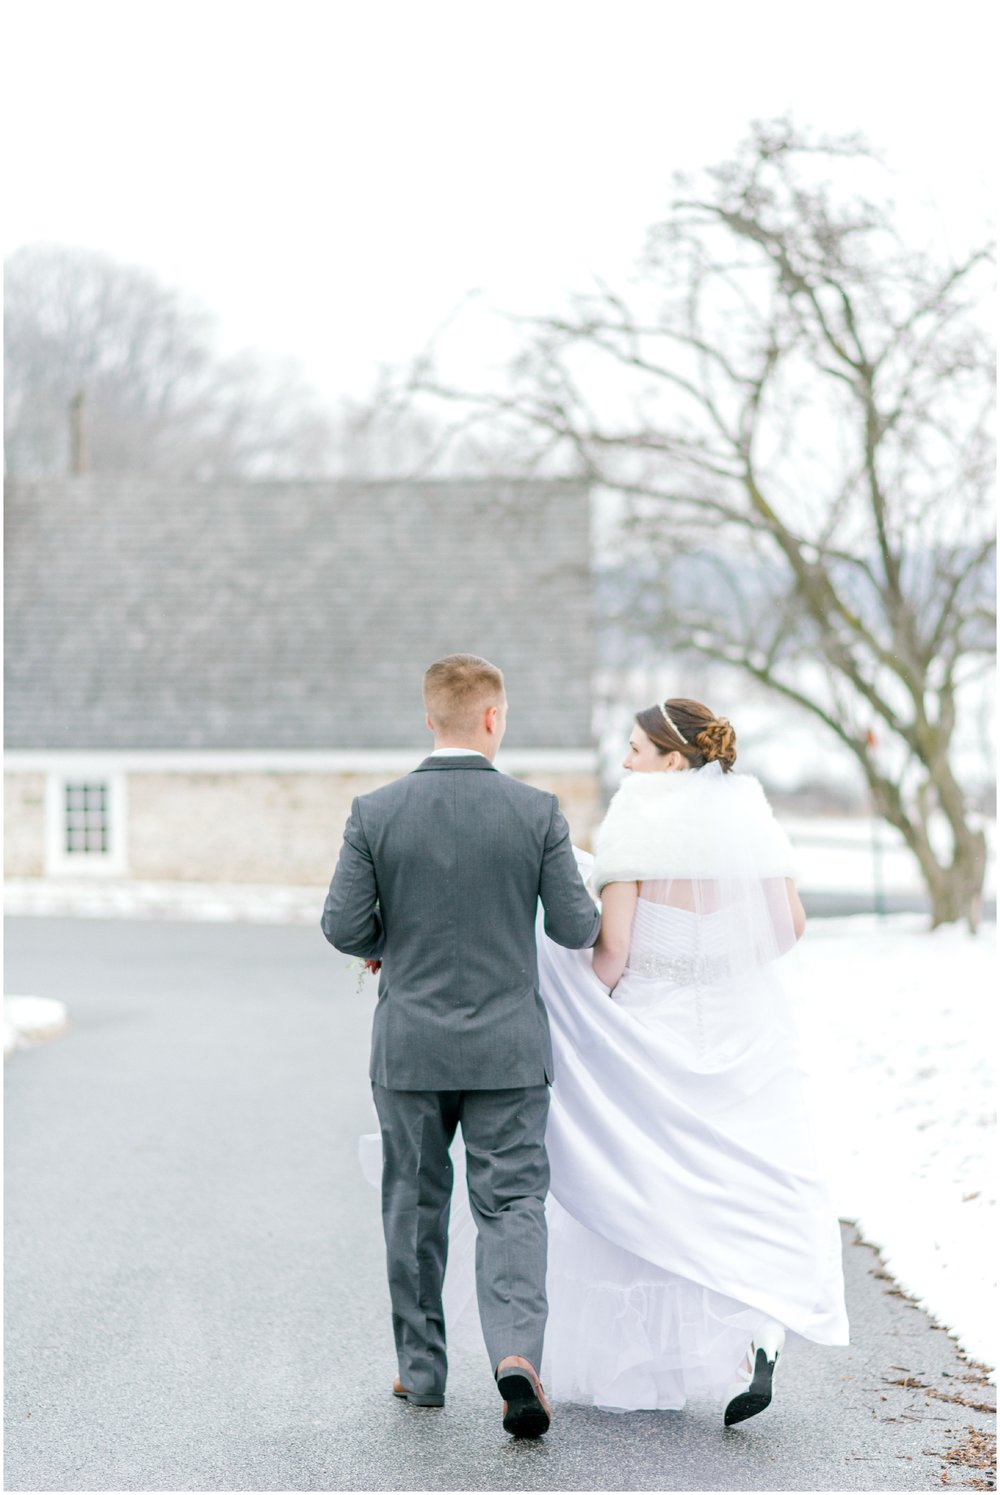 Snowy Winter Wedding in Kennett Square, PA- Krista Brackin Photography_0036.jpg